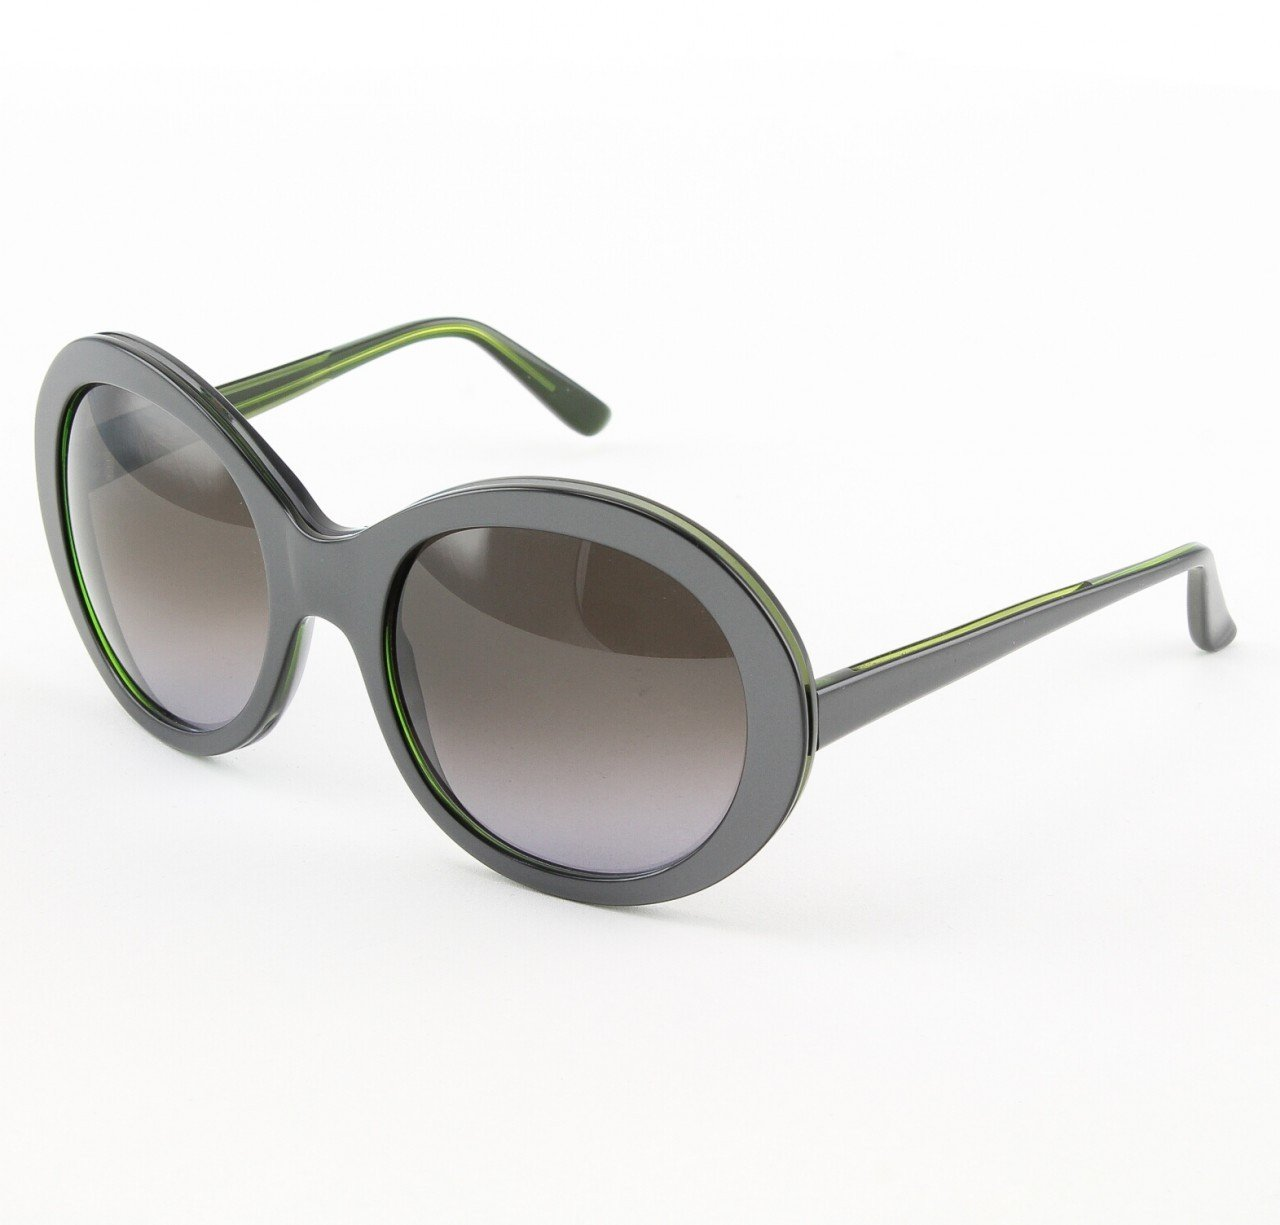 Marni MA162S Sunglasses Col. 06 Oversized Gun Metal Gray Frame with Gray Gradient Lenses